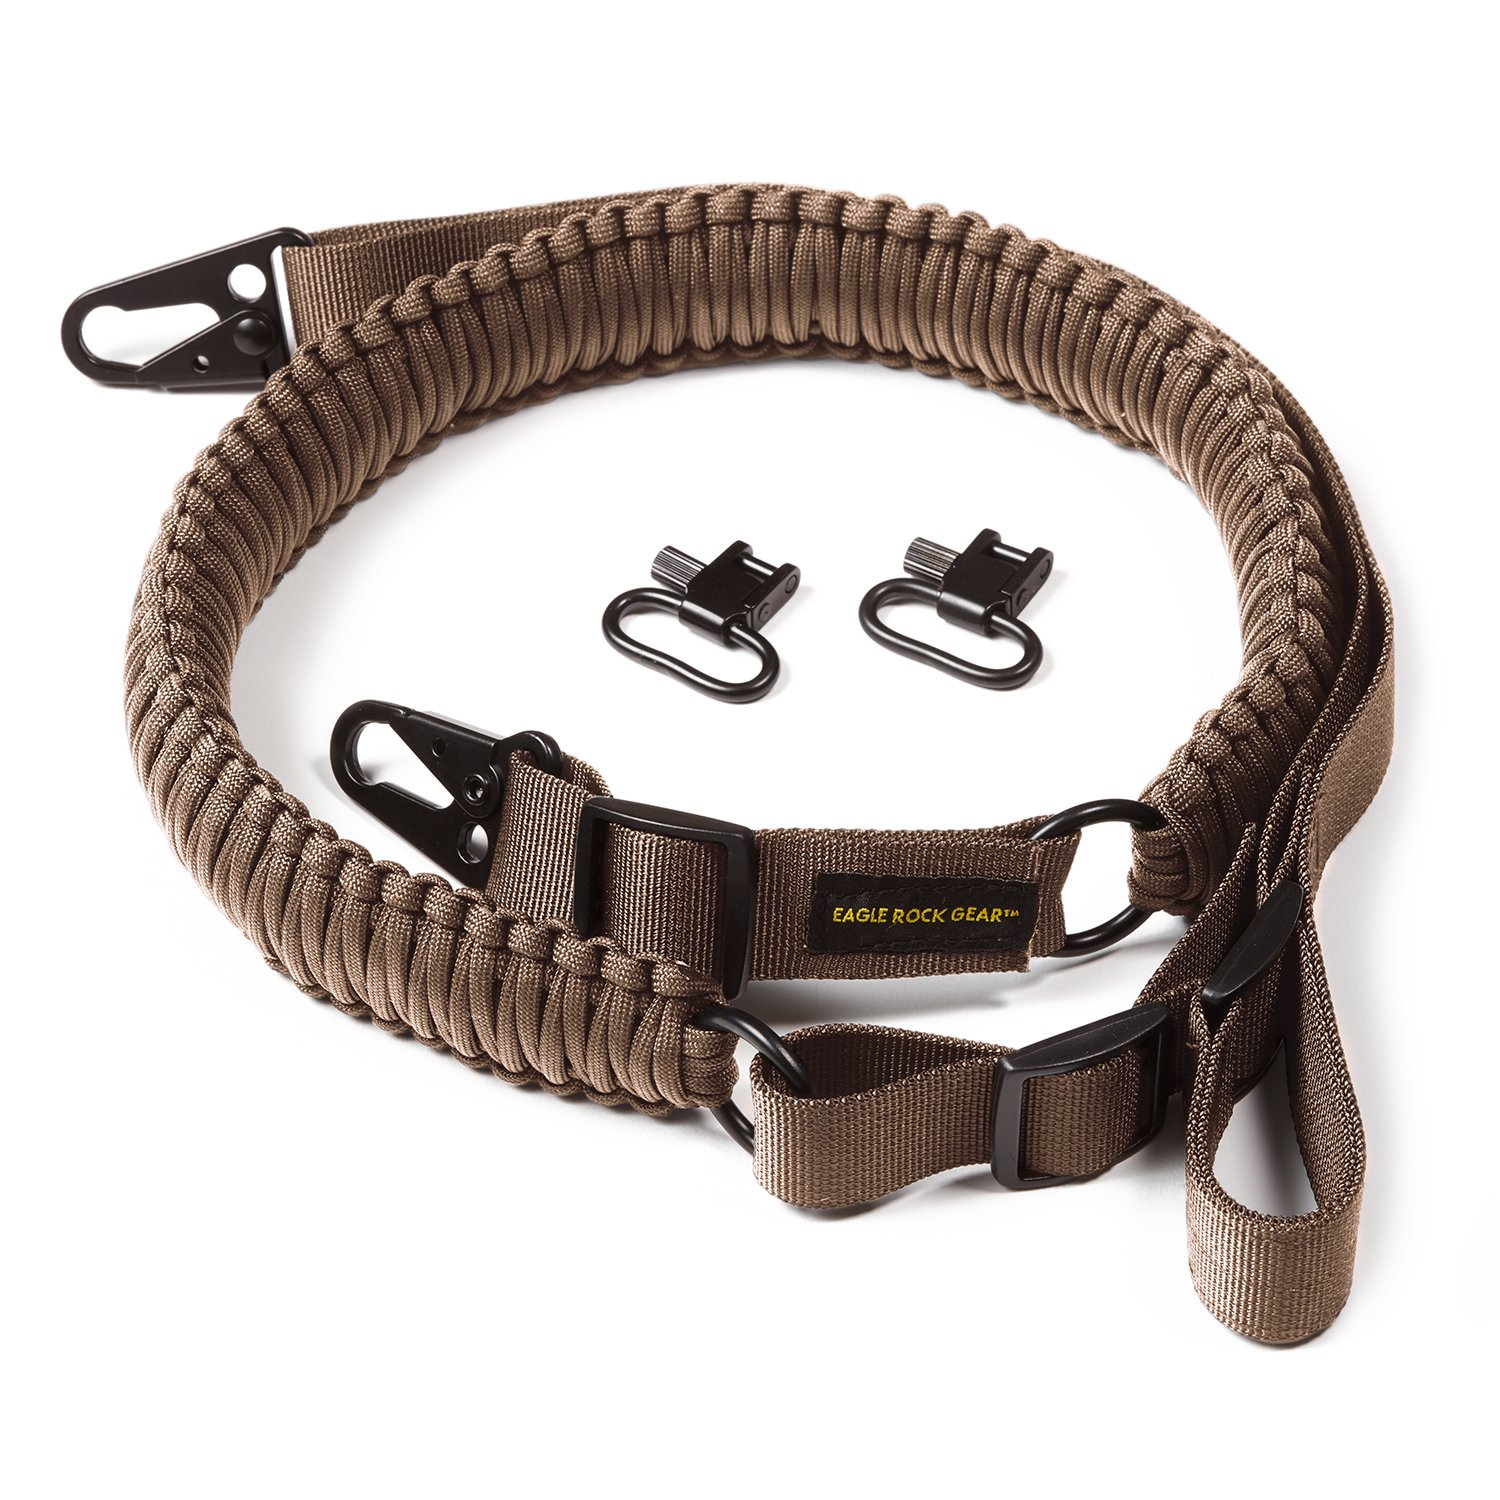 Eagle Rock Gear 550 Paracord 2 Point Gun Sling for Rifles, Shotguns, Crossbows, Airsoft - with Easy Adjustable Strap, HK Clips, Swivels (Tan) by Eagle Rock Gear